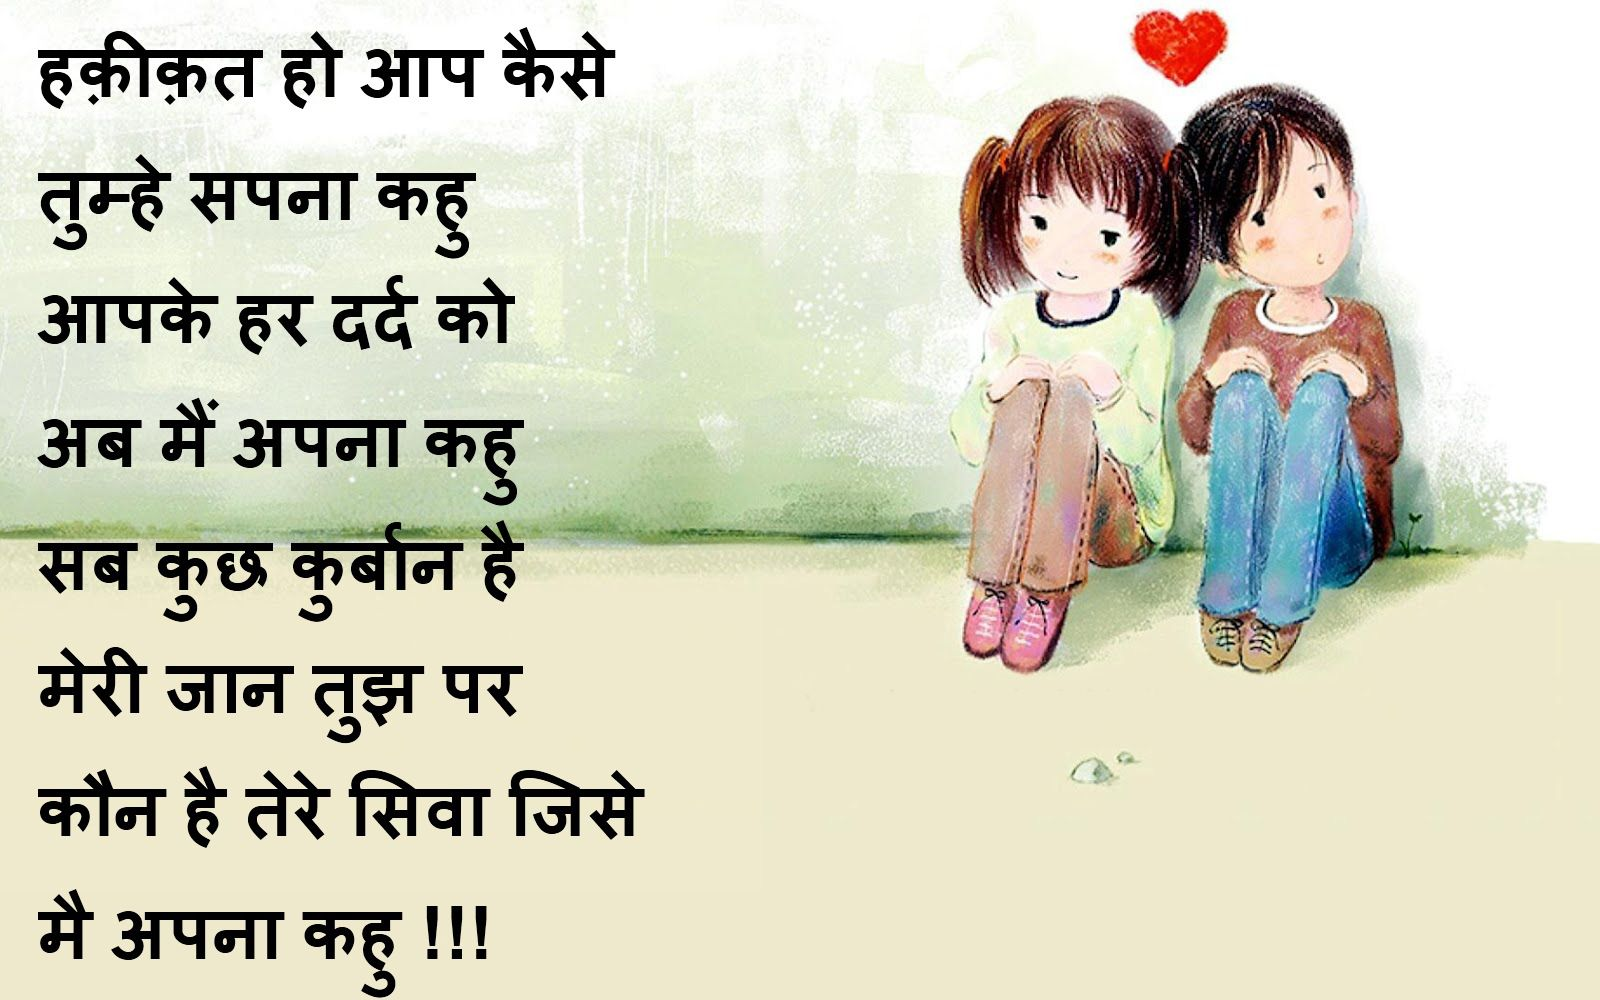 hindi shayari hd wallpapers best games wallpapers pinterest